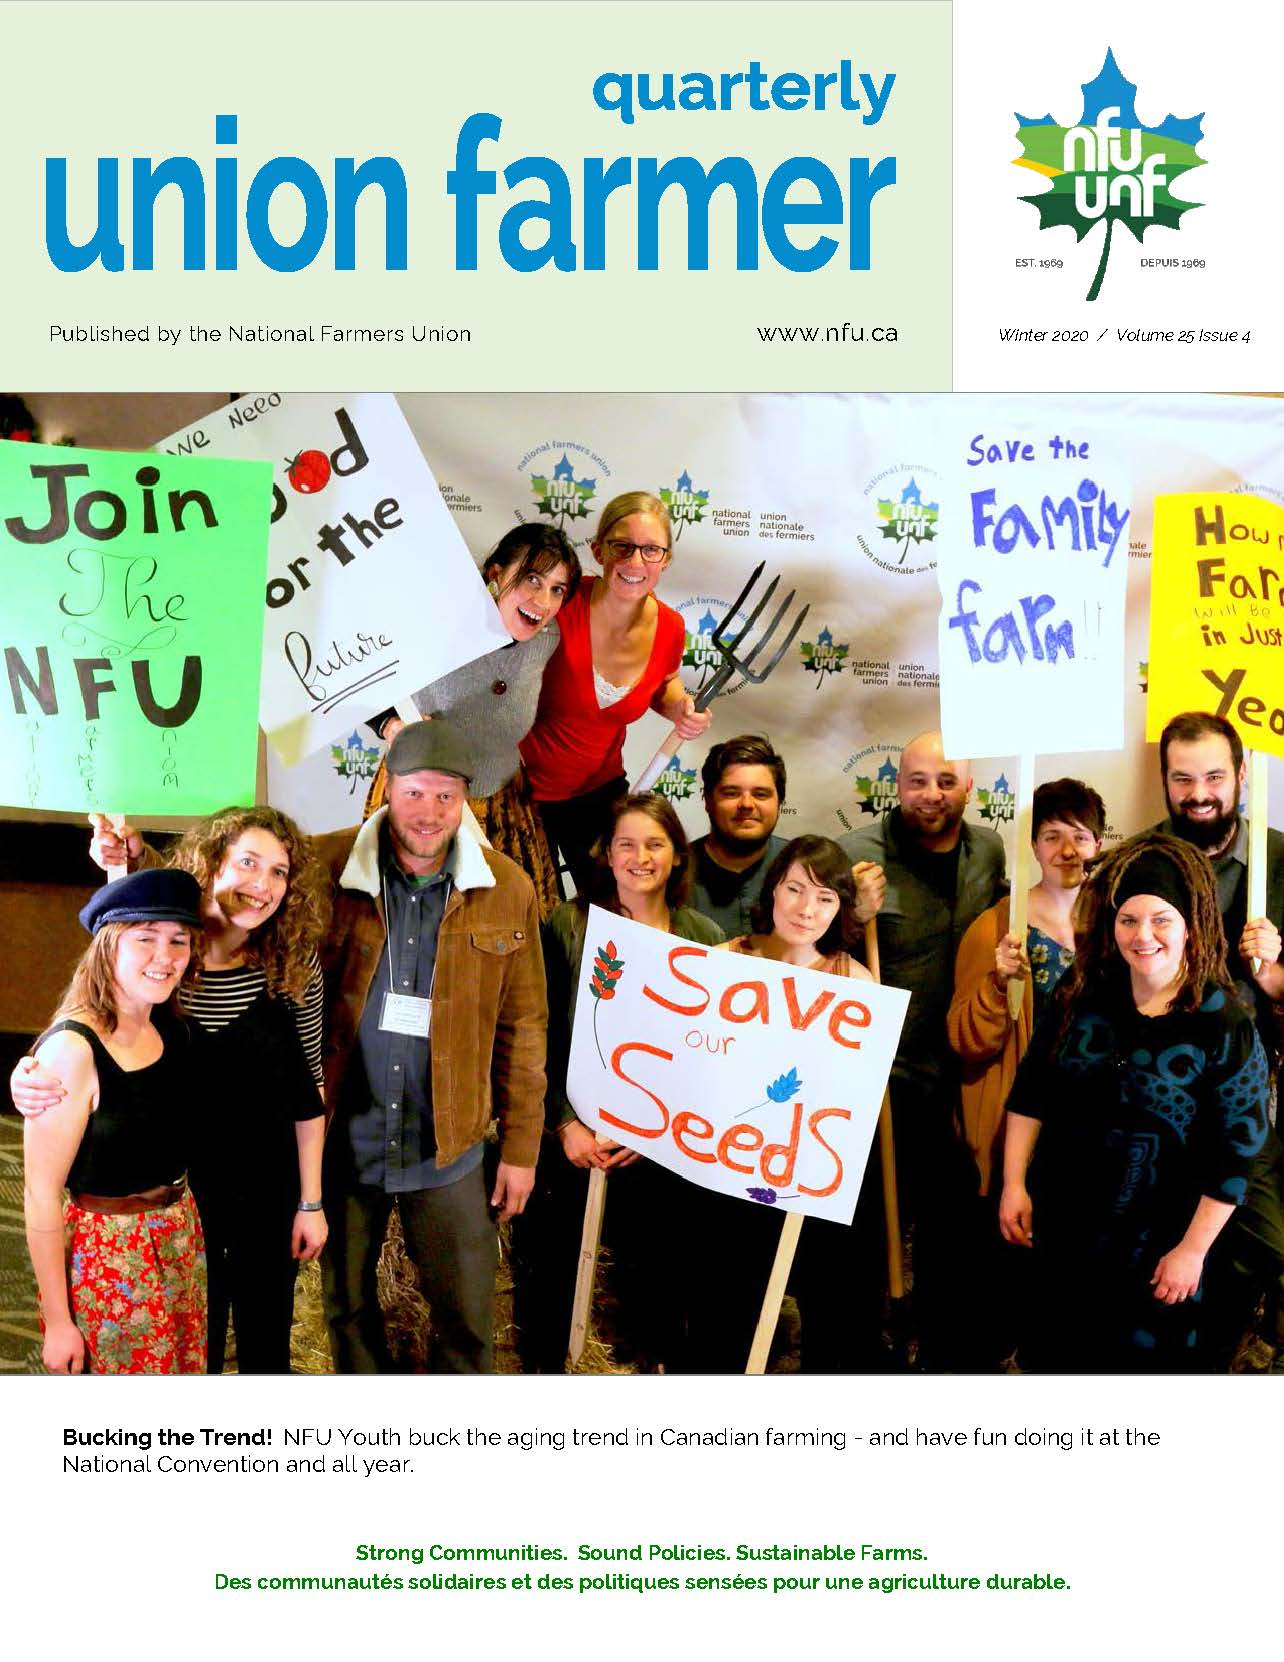 Union Farmer Quarterly: 2020 d'hiver